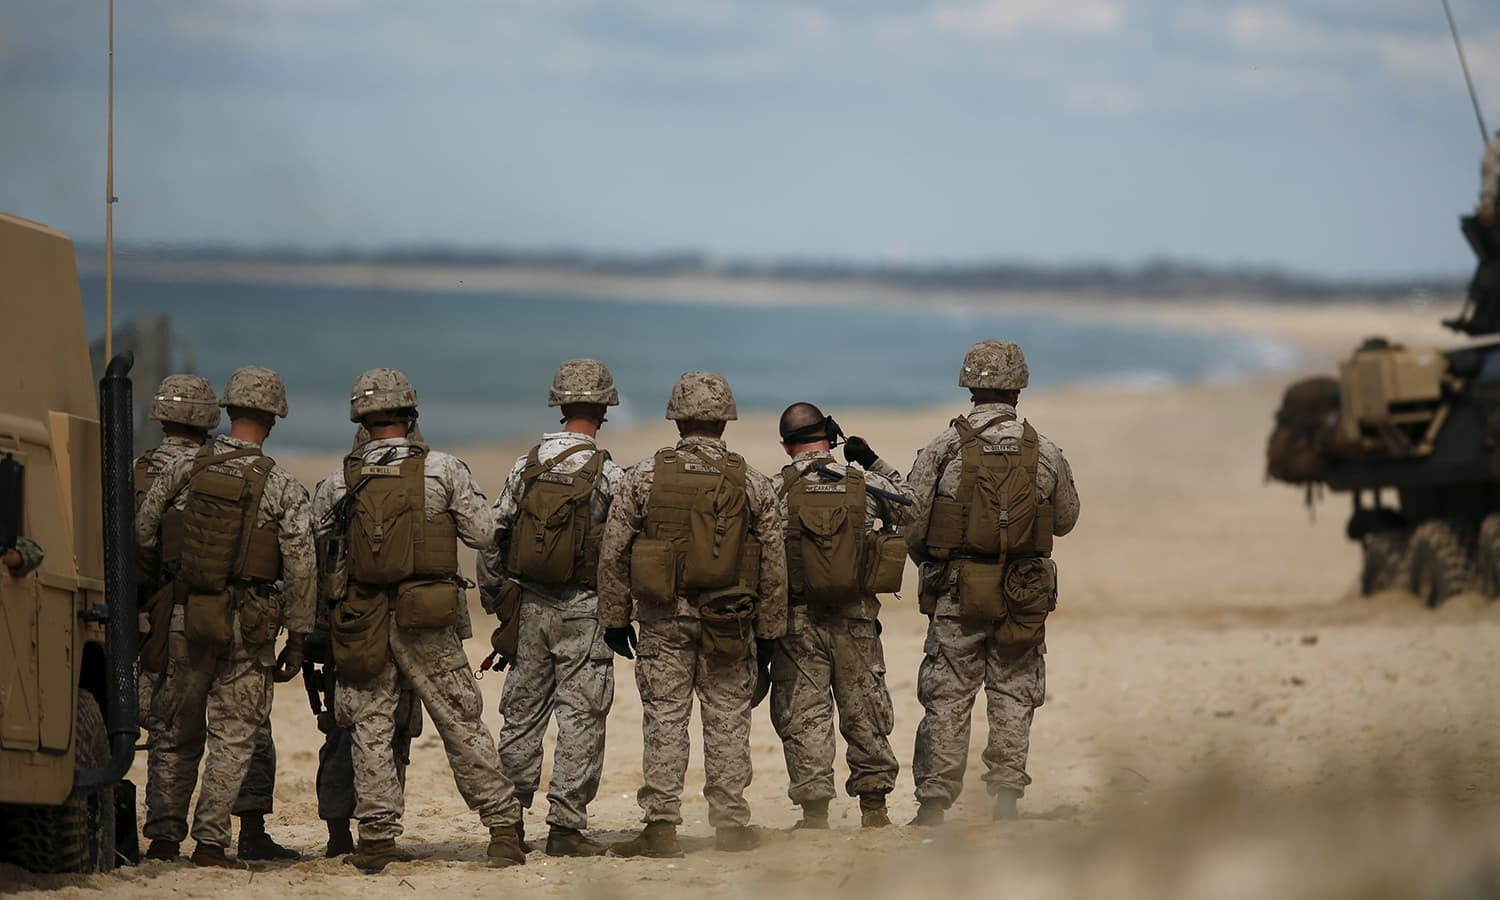 Nato soldiers attend a Nato military exercise at Raposa beach, near Setubal. NATO and its allies opened their largest military exercise in more than a decade on Monday, choosing the central Mediterranean to showcase strengths that face threats from Russia's growing military presence from the Baltics to Syria. — Reuters